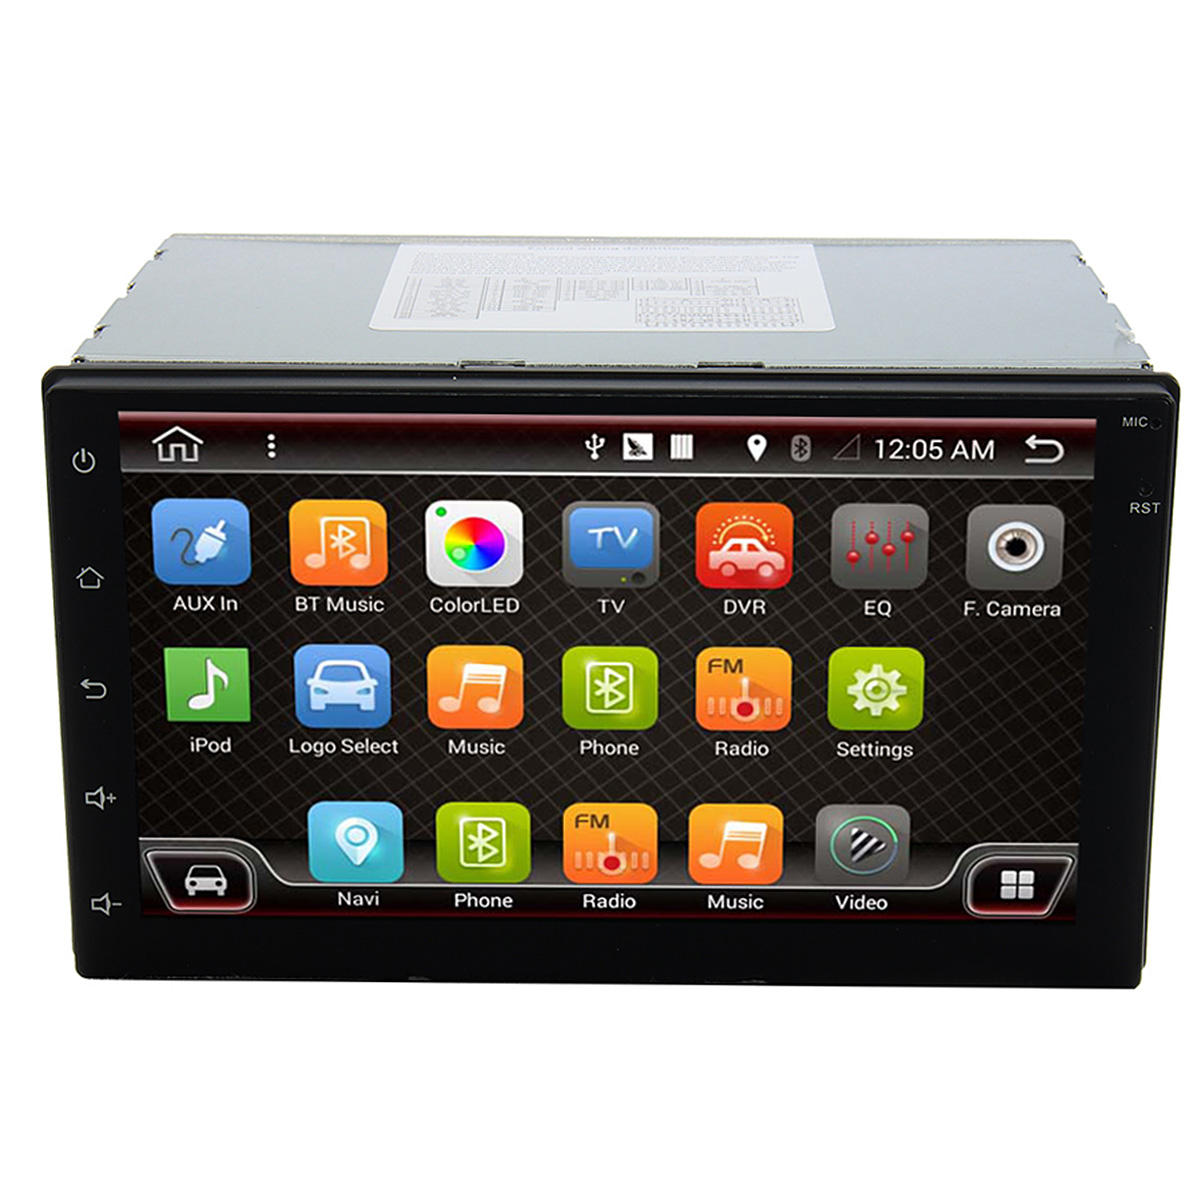 7 Inch Android 6.0 Double 2 DIN Sat Navigation Coche Navegación GPS Stereo DAB